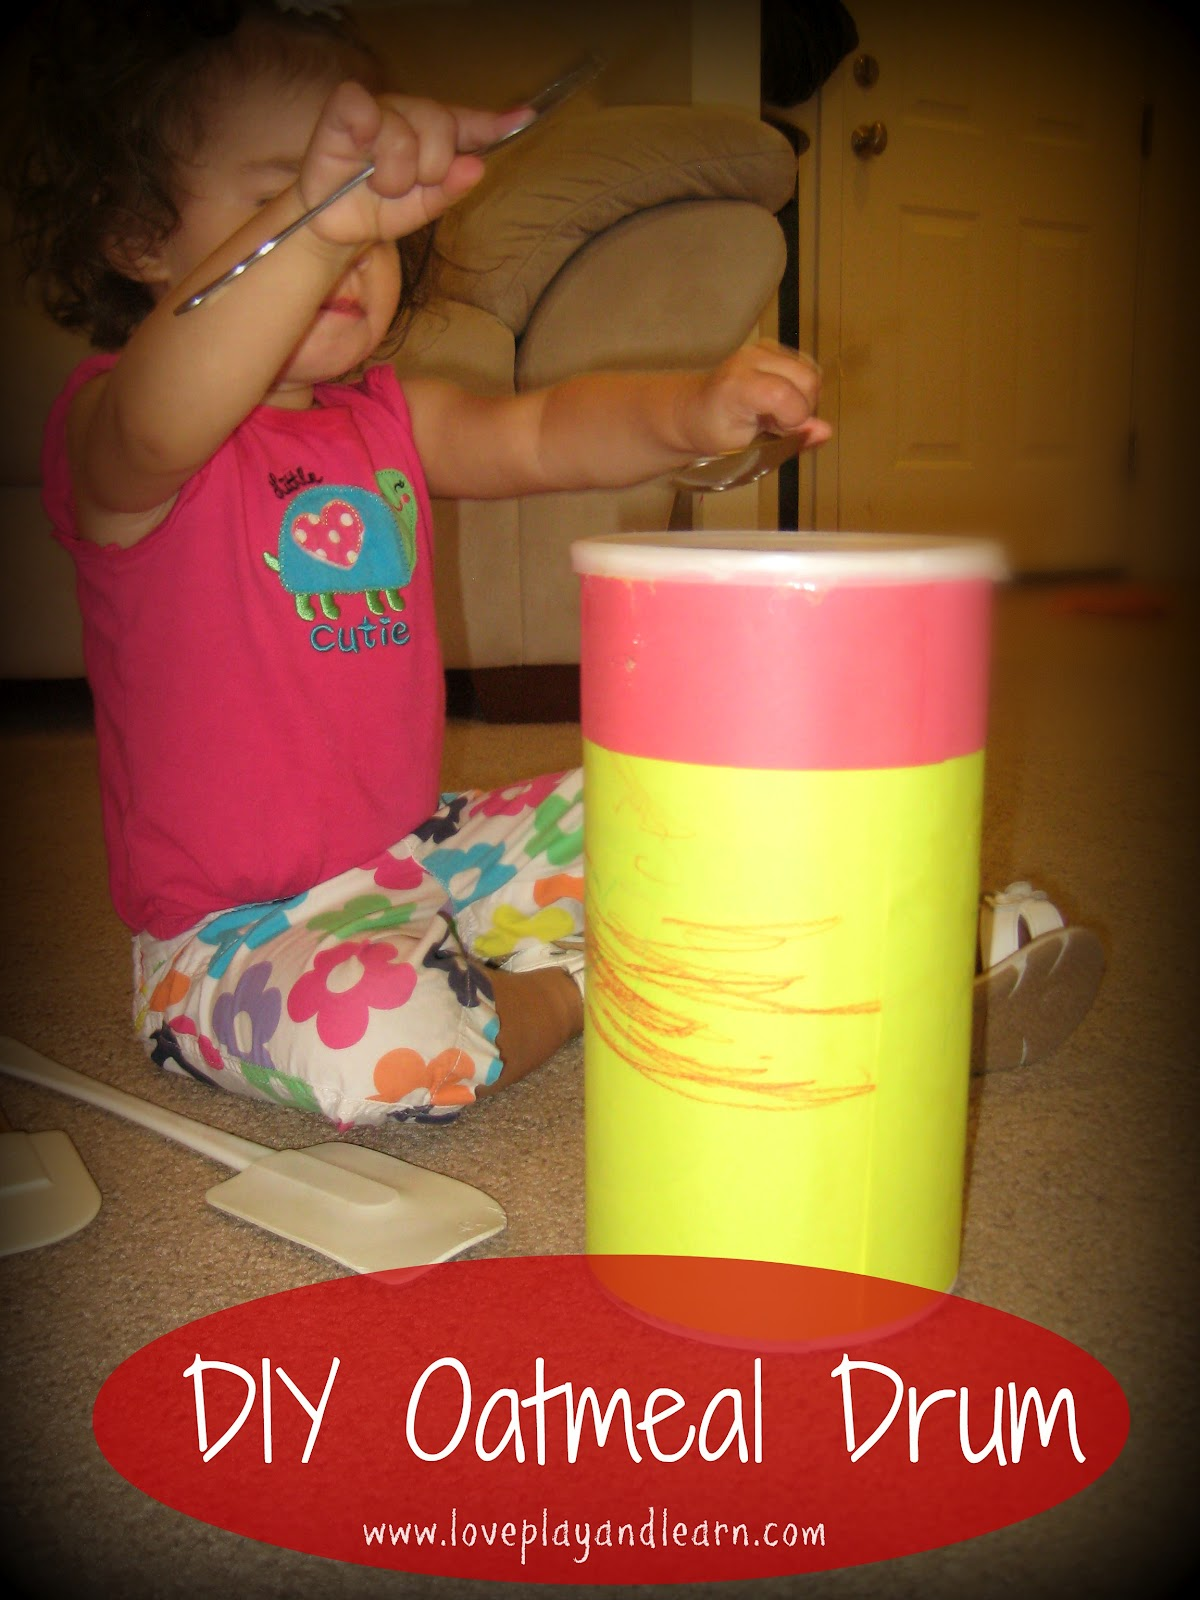 Homemade drum for kids